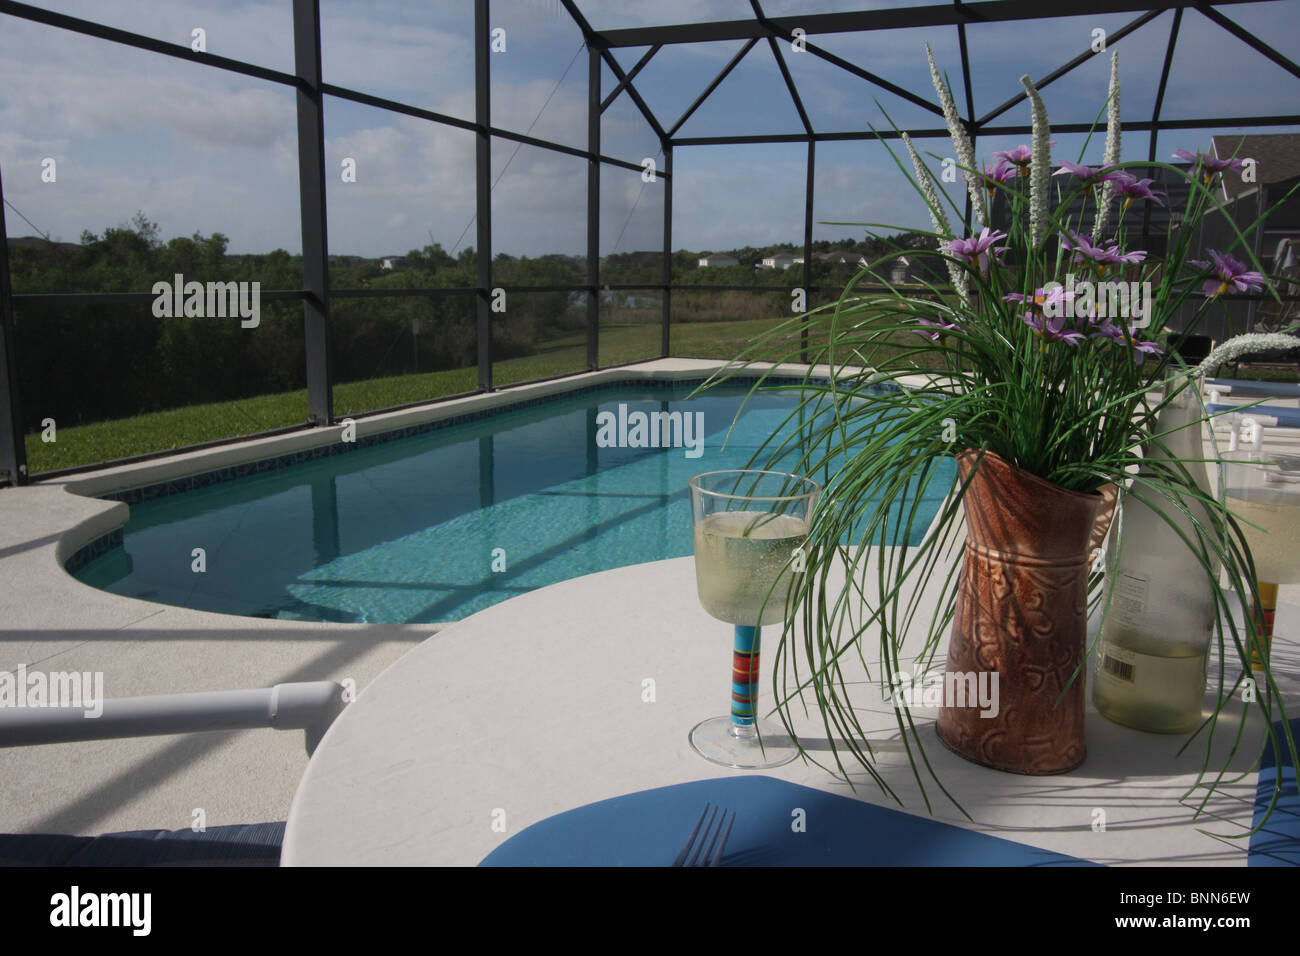 Jacuzzi Pool Covers Private Swimming Pool And Patio Area With Insect Mesh Cover Taken